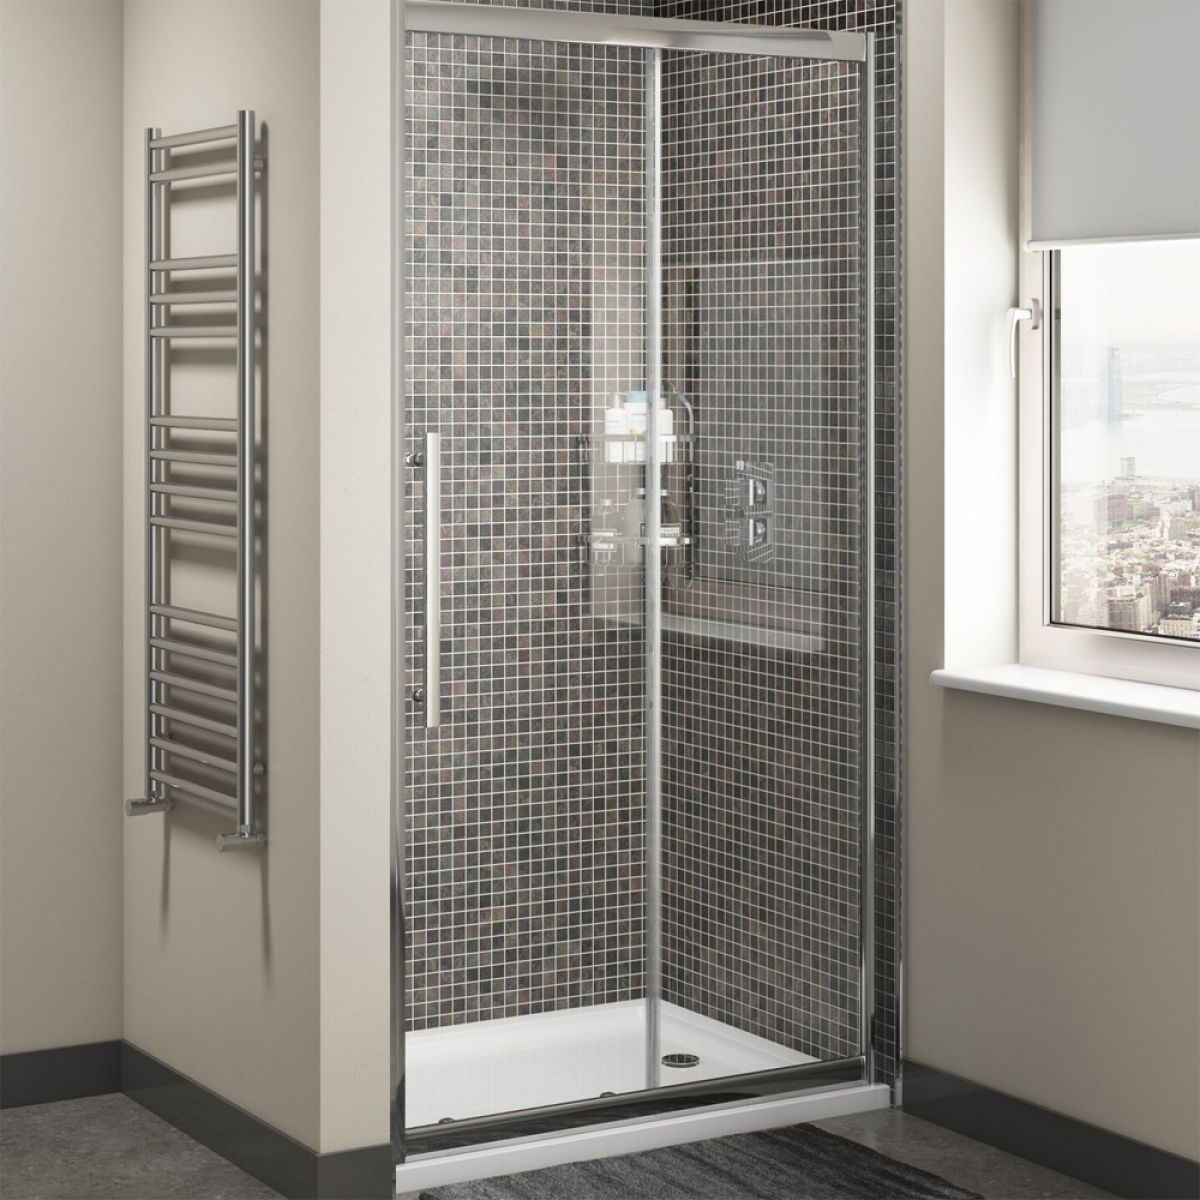 Cassellie Cass Eight Sliding Door Shower Enclosure with Optional Side Panel